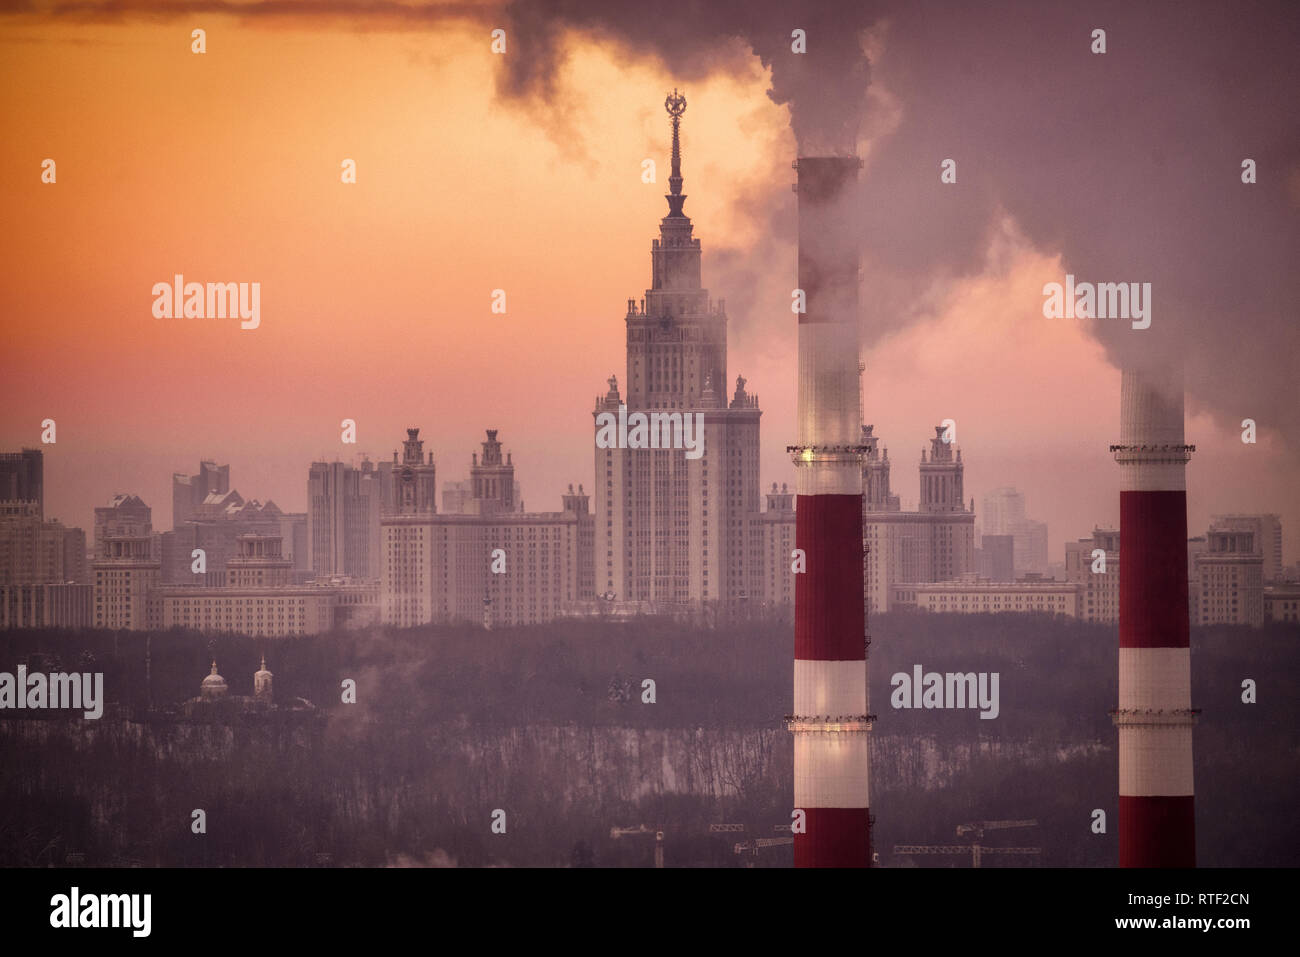 Moscow, Russia - January 9, 2019: Main building of Moscow State University, one of seven Stalinist style skyscrapers (Главное здание МГУ) - Stock Image